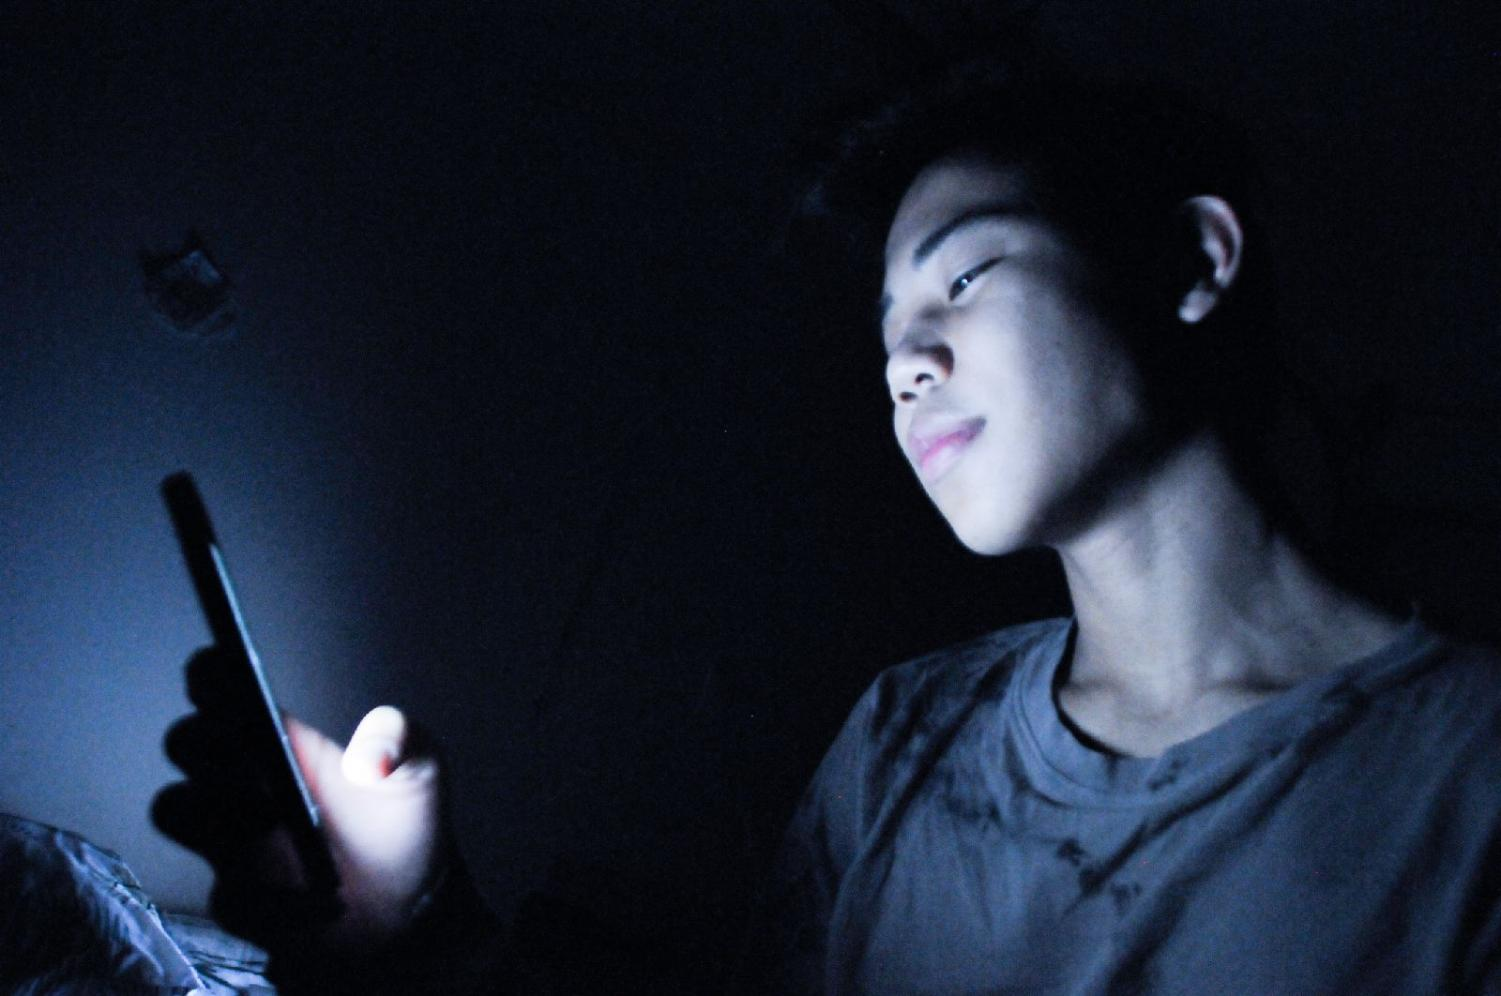 Many teenagers are being addicted to their phones because of being exposed to a phone at an early age. Due to phone addiction many kids aren't very socialized in outdoor activities. Apple has announced  that they will be partnering with experts to stop smartphone addiction for children.